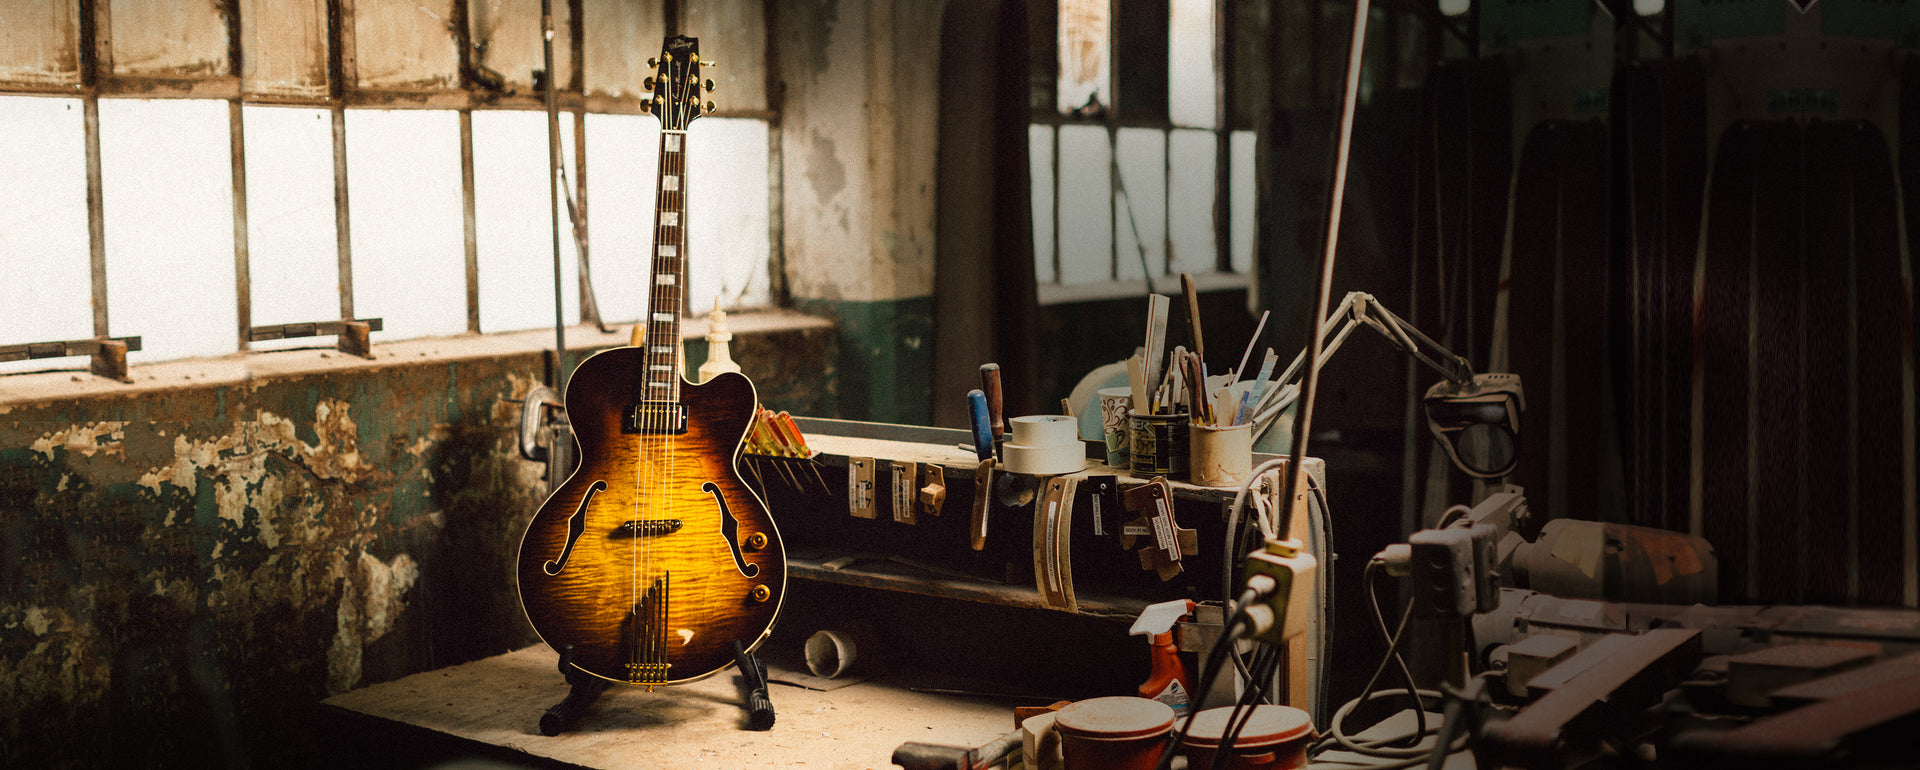 Heritage Guitars | Finest American-Made Electric Guitars